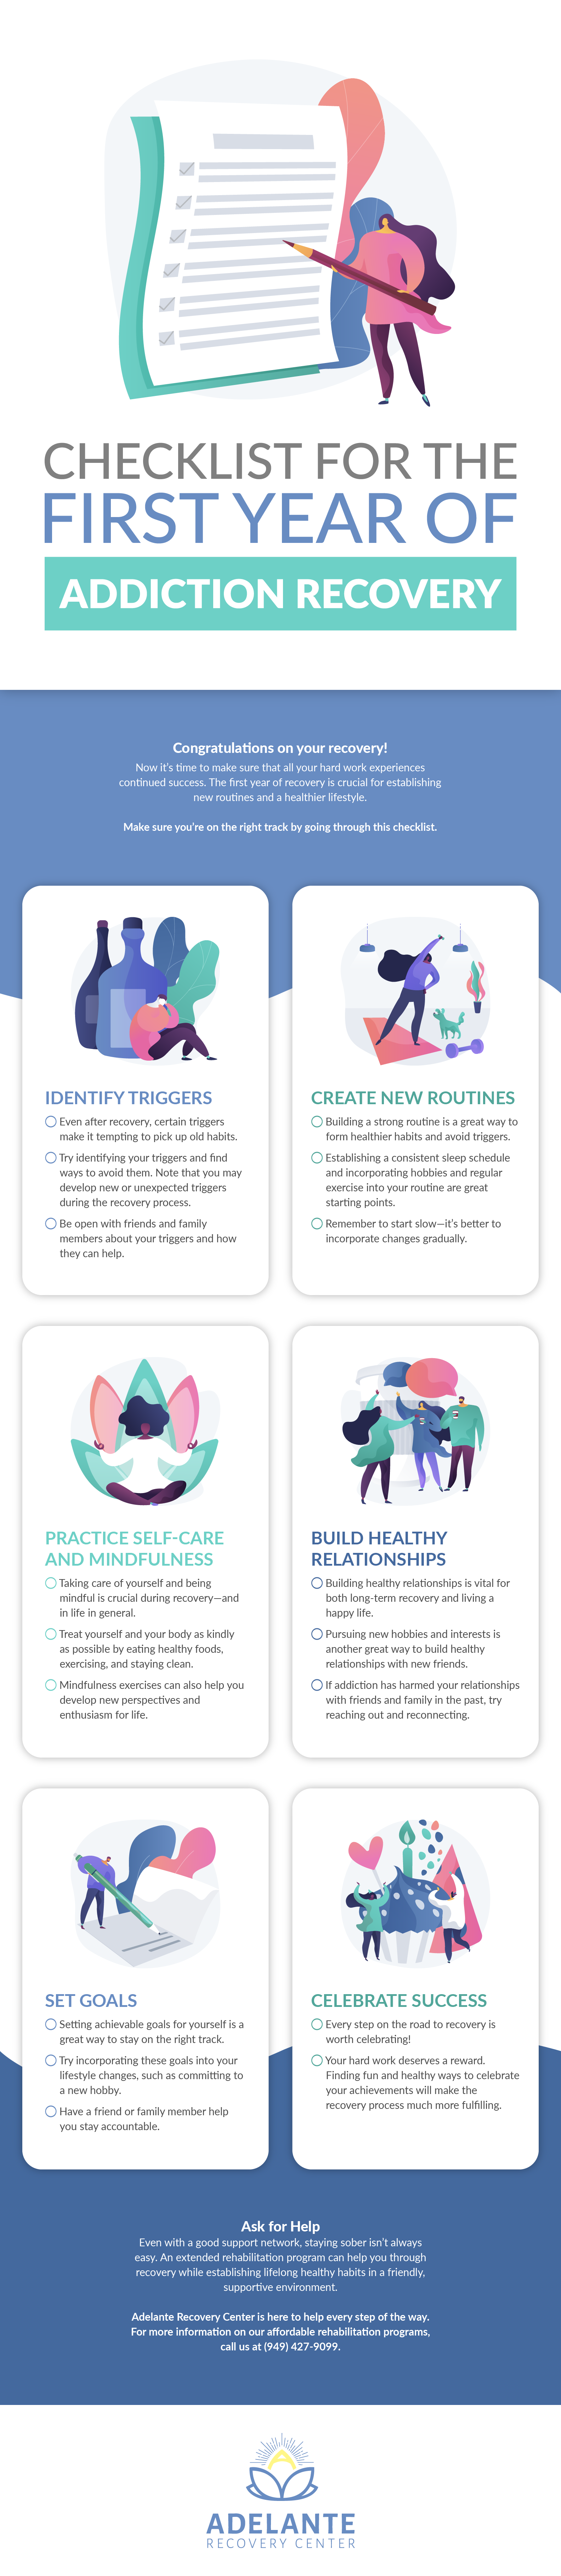 First Year Addiction Recovery Checklist Infographic